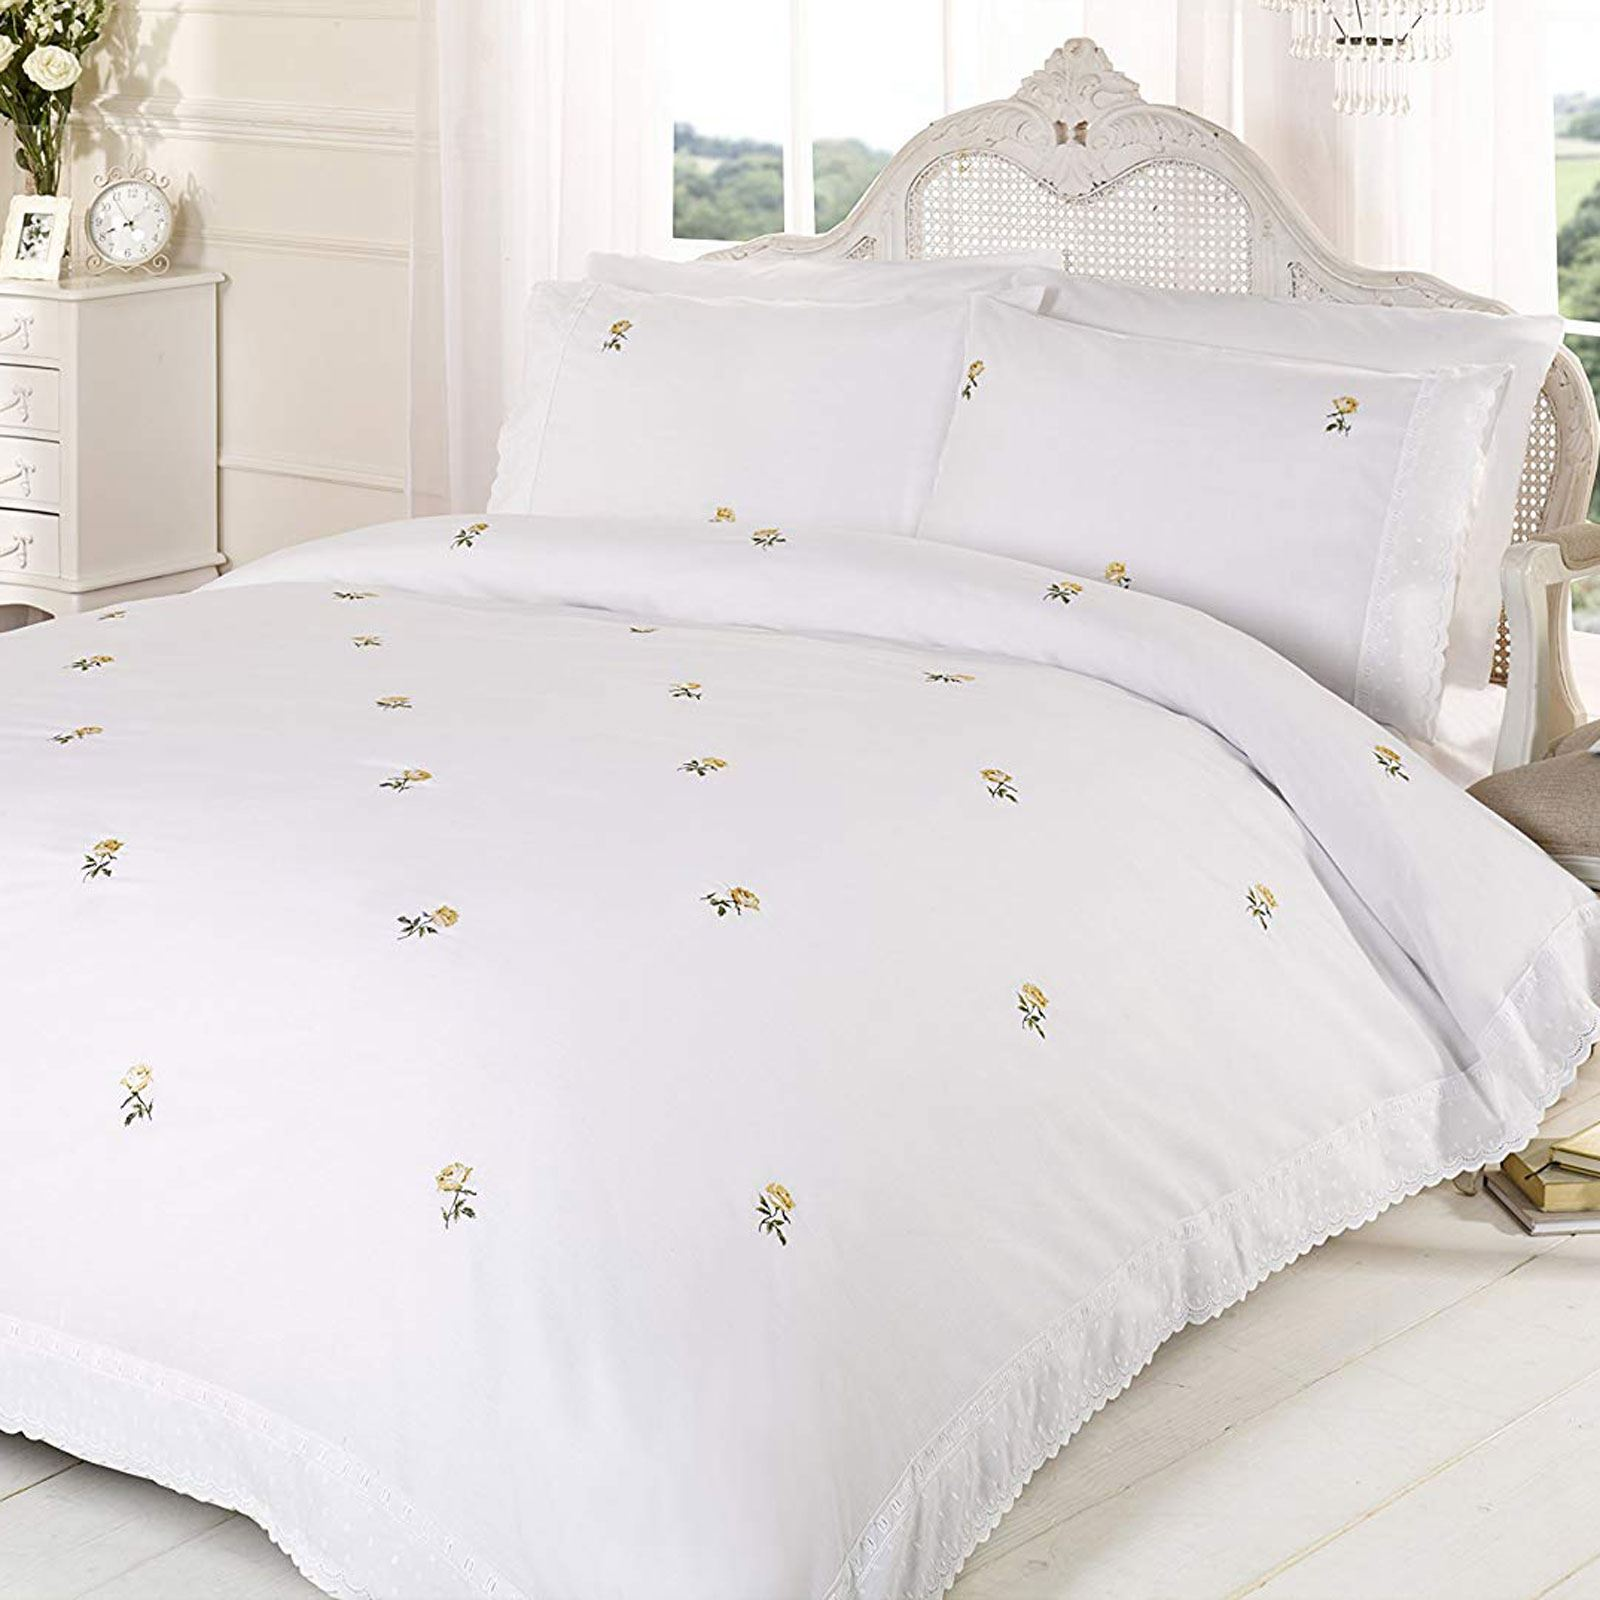 Alicia Floral White Yellow Super King Size Duvet Cover Set Embroidered Bedding Ebay